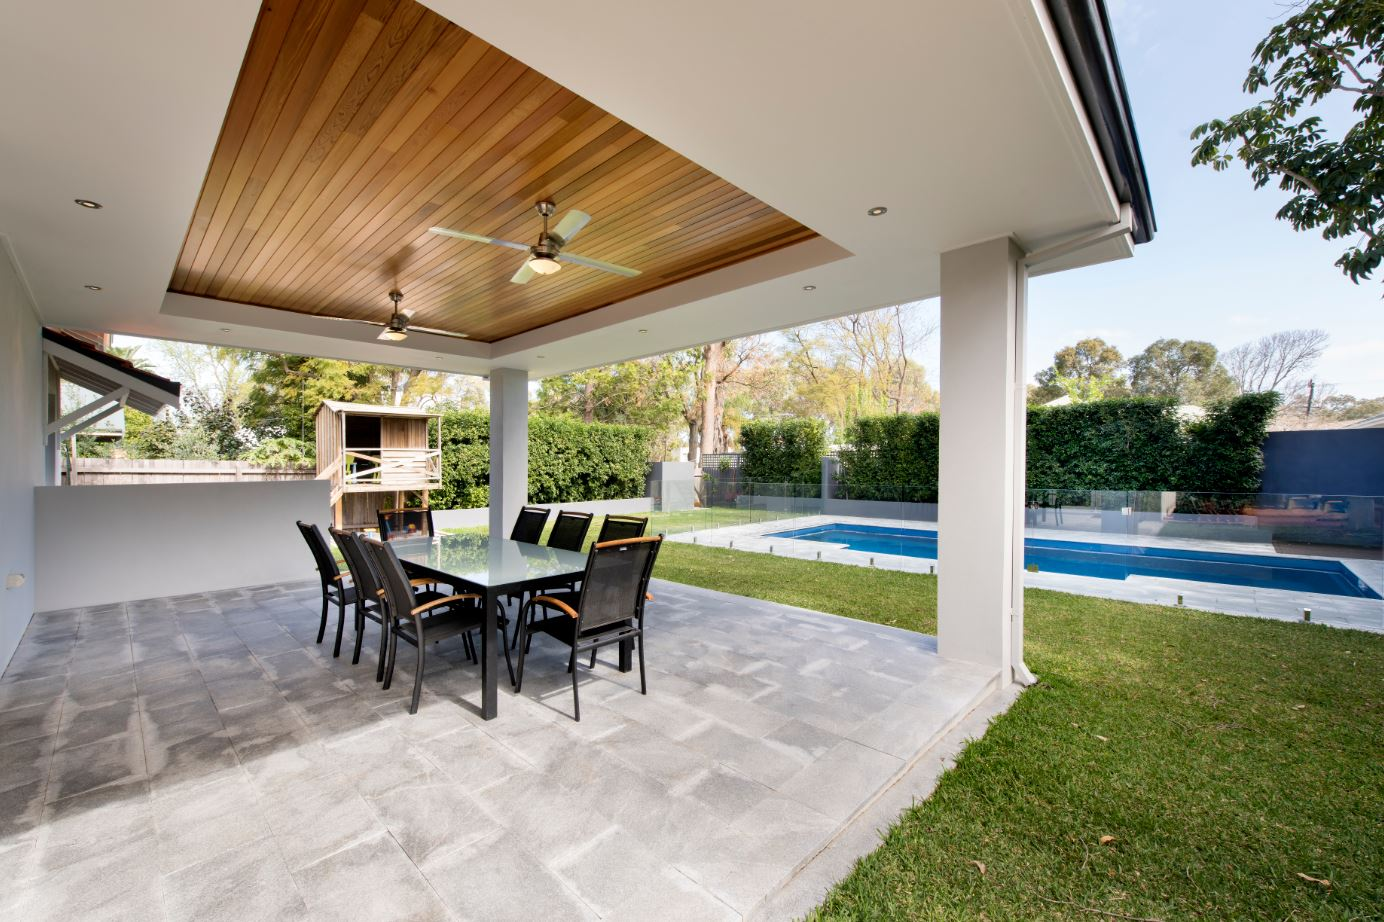 The consistency of the grey pavers in the alfresco area make a visual link to the pool area, adding to the feeling of spaciousness.